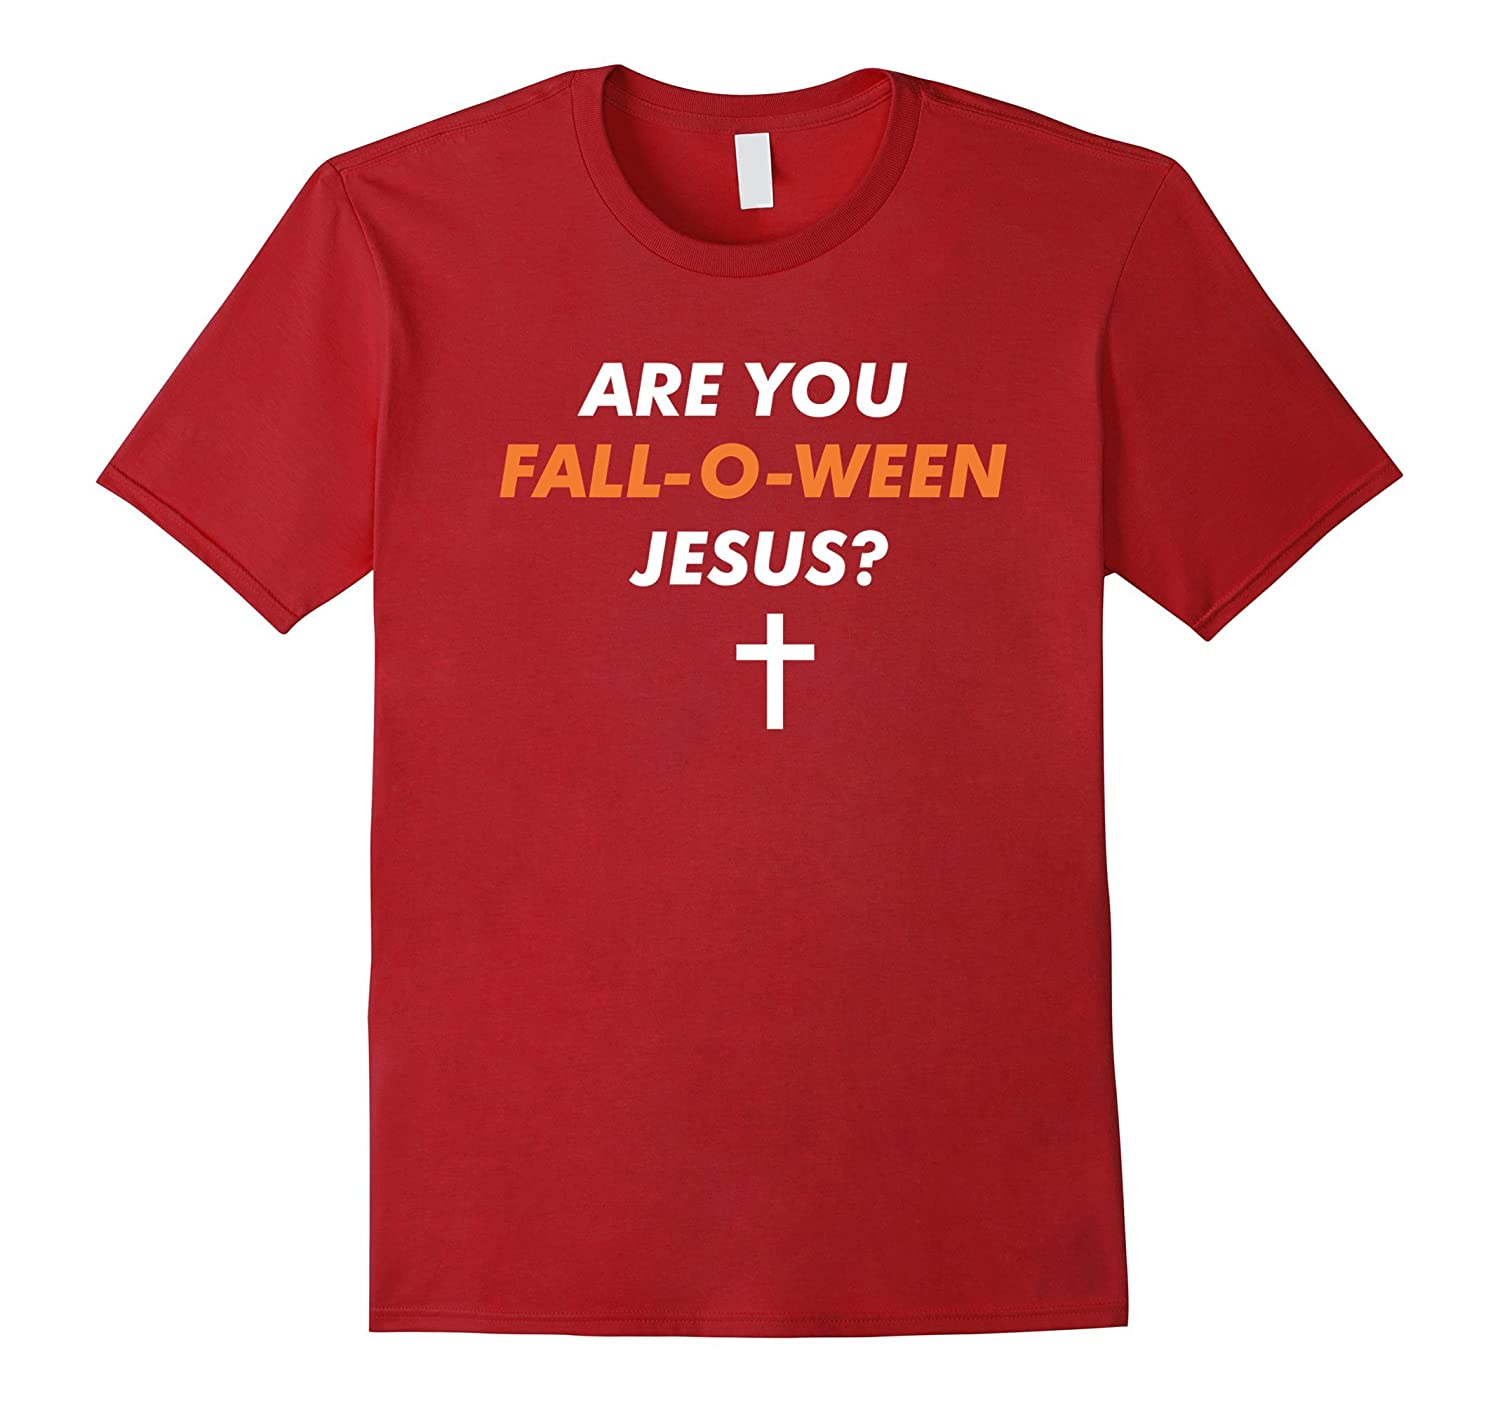 f15858d97 Are you Fall-O-Ween Jesus Shirt - Funny Christian Halloween-ANZ ...